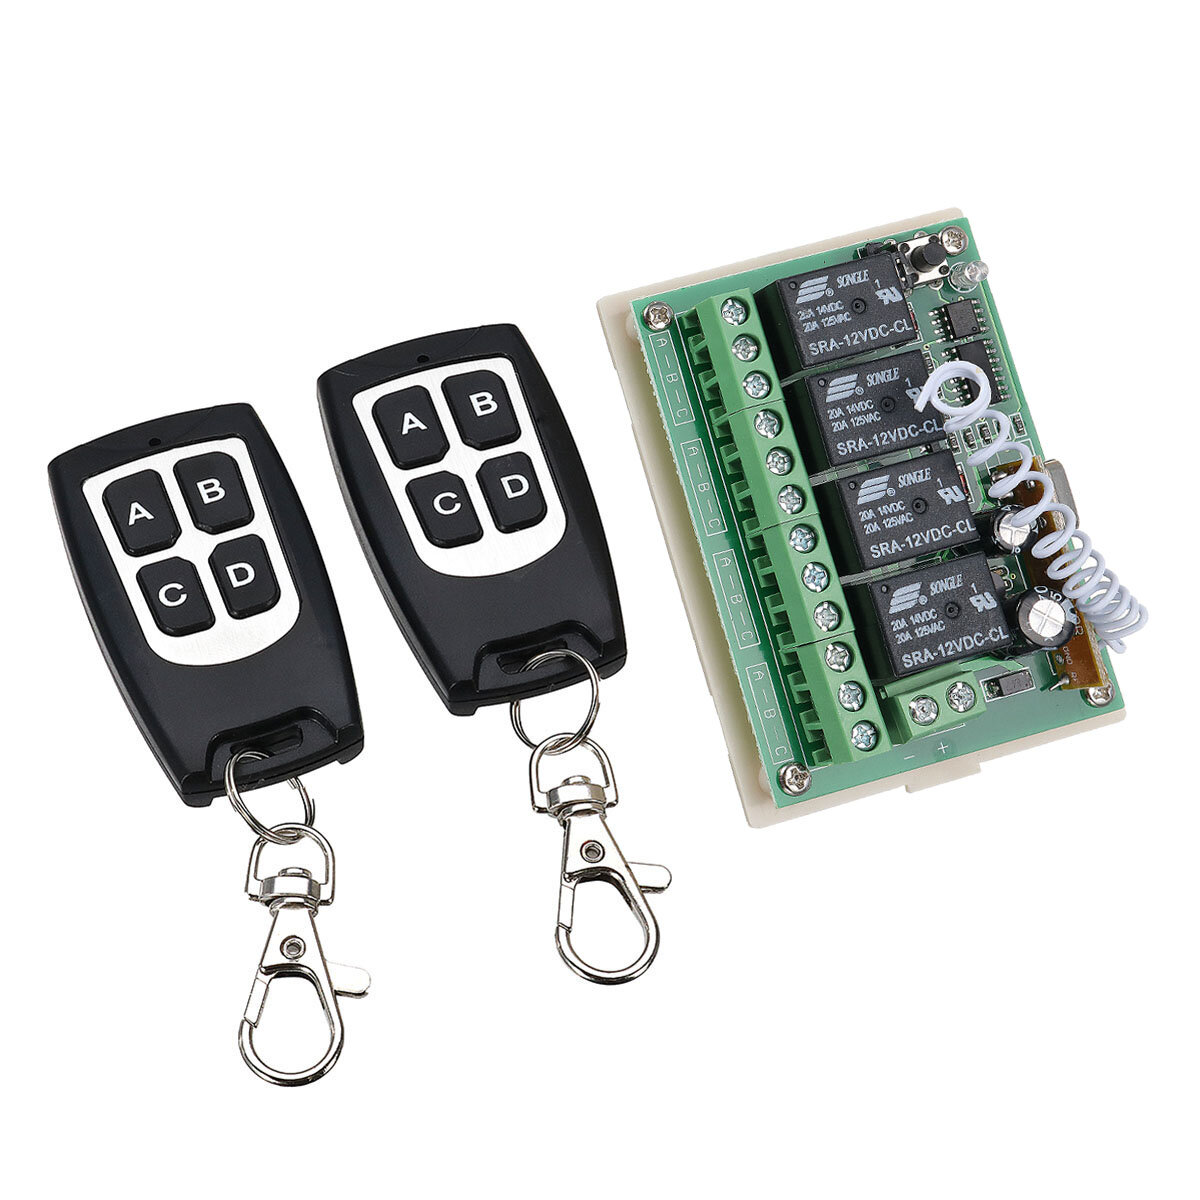 Geekcreit 12v 4ch Channel 433mhz Wireless Remote Control Switch Easy Fm Tracking Transmitter With 2